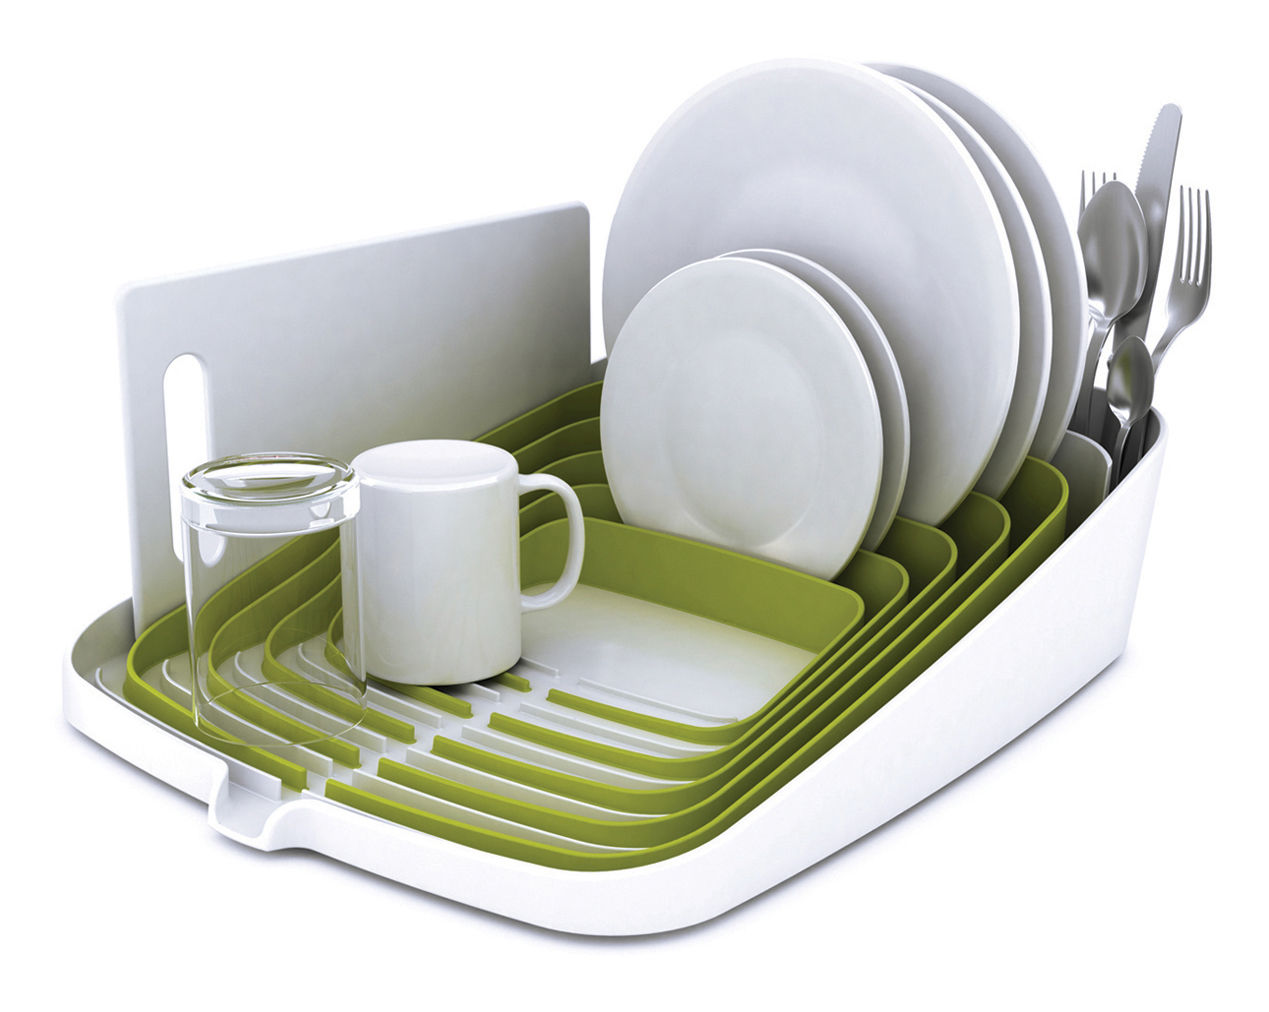 Arena Draining Rack Dish Drainer Green Amp White By Joseph